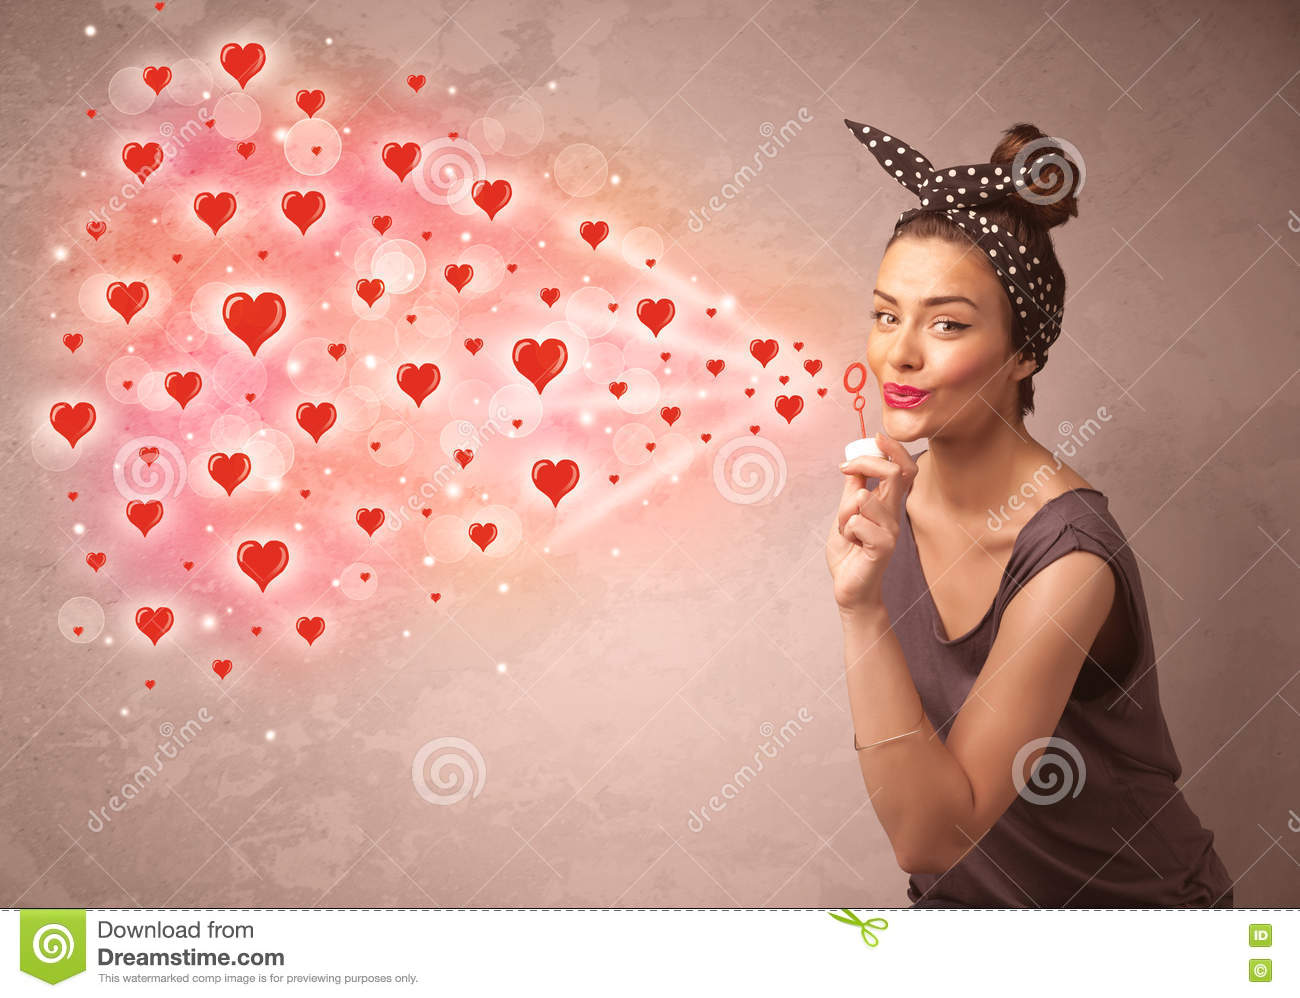 Pretty Young Girl Blowing Red Heart Symbols Stock Photo Image Of